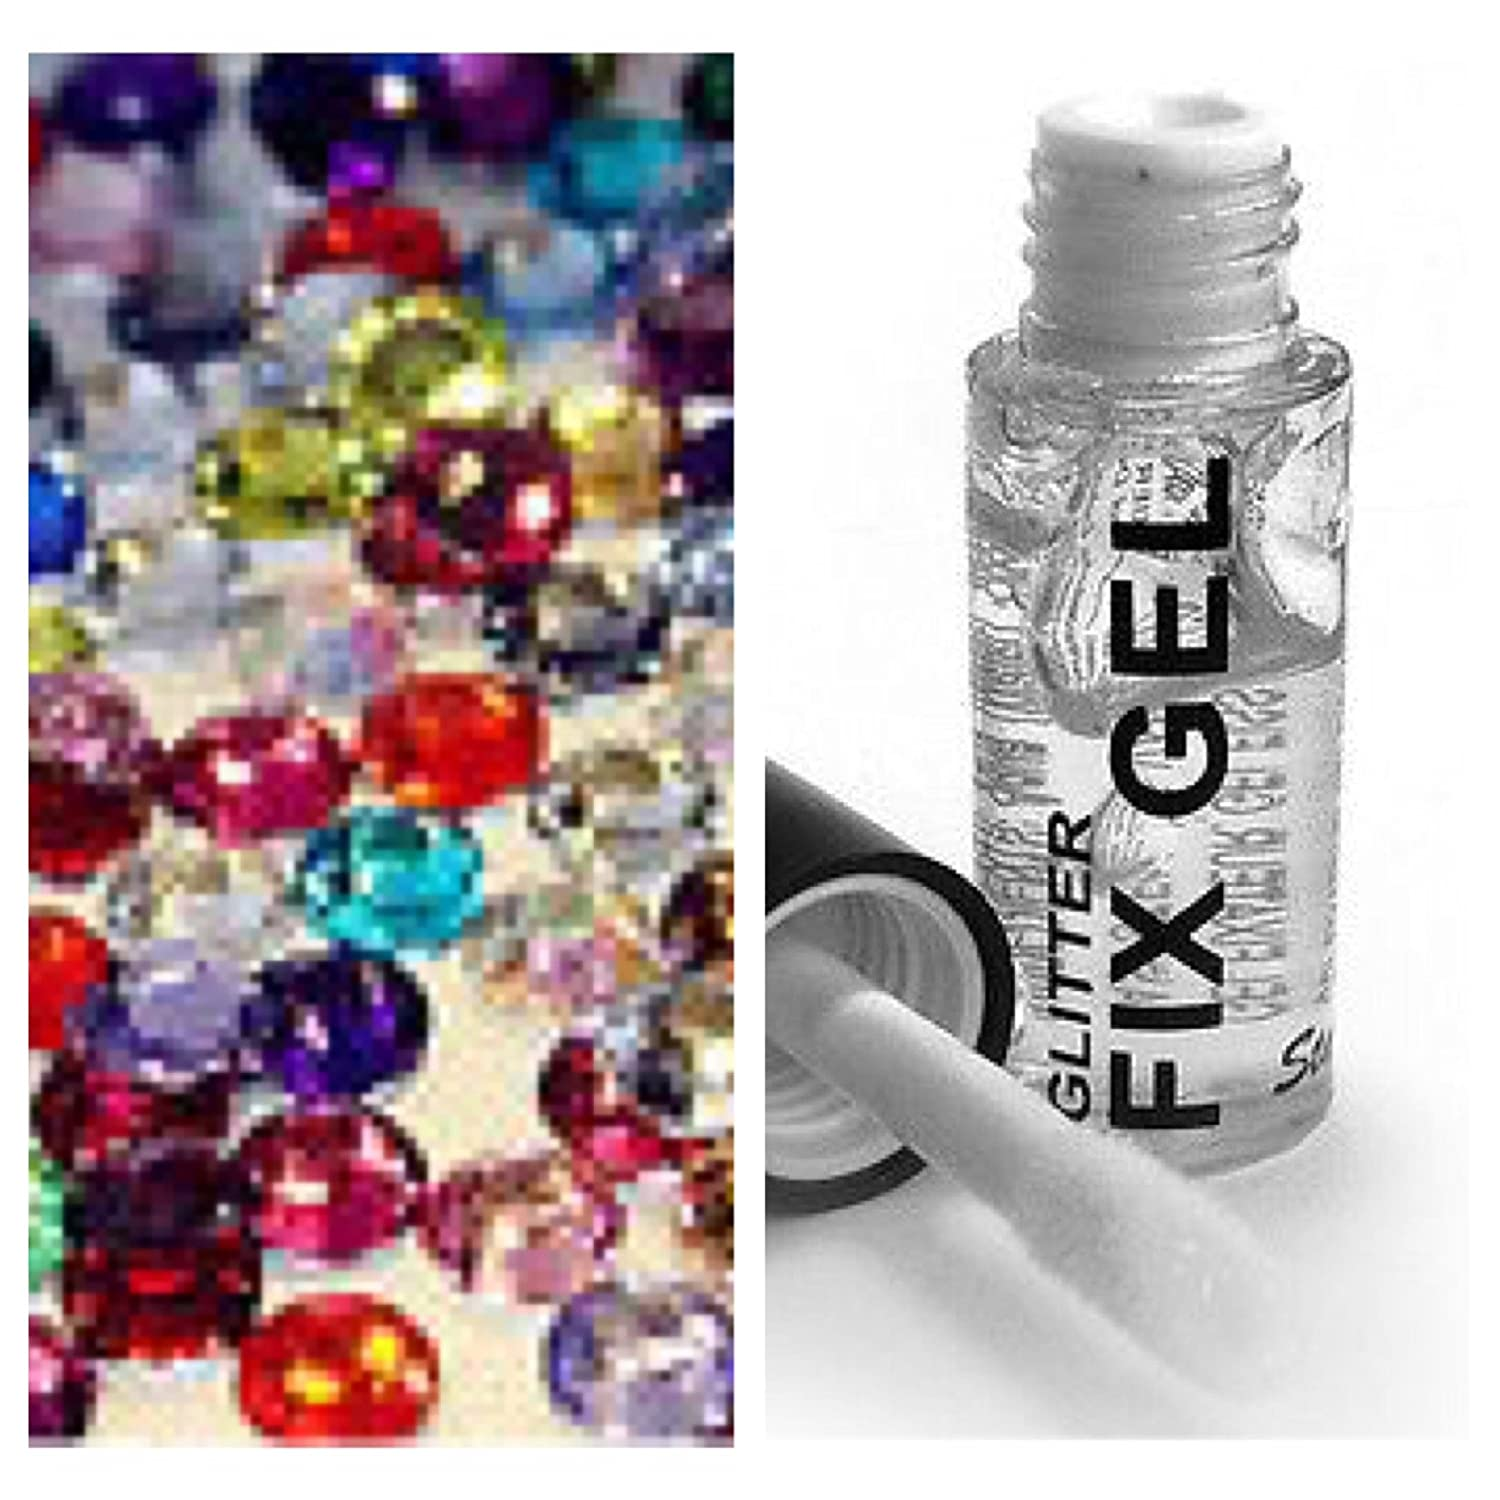 1000 Multi Coloured Crystal Rhinestones Gems Diamonte Eyes Nails Craft + Fix Glue (3mm) Just4youonlineuk